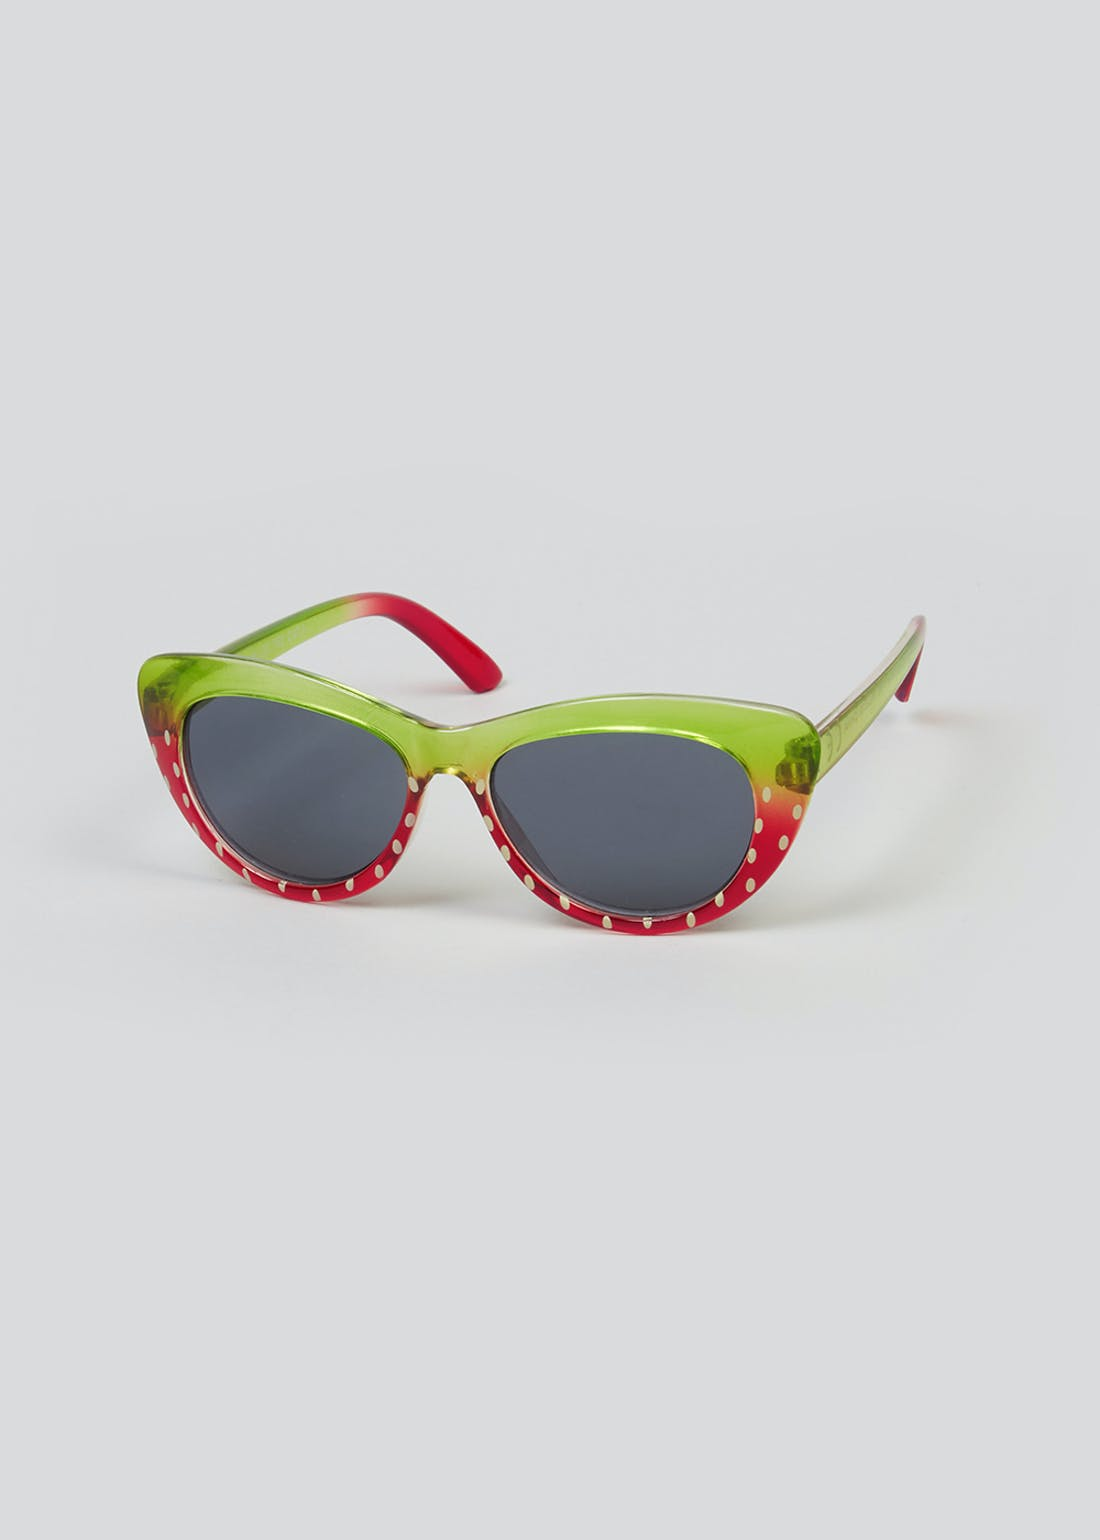 Girls Strawberry Sunglasses (One Size)